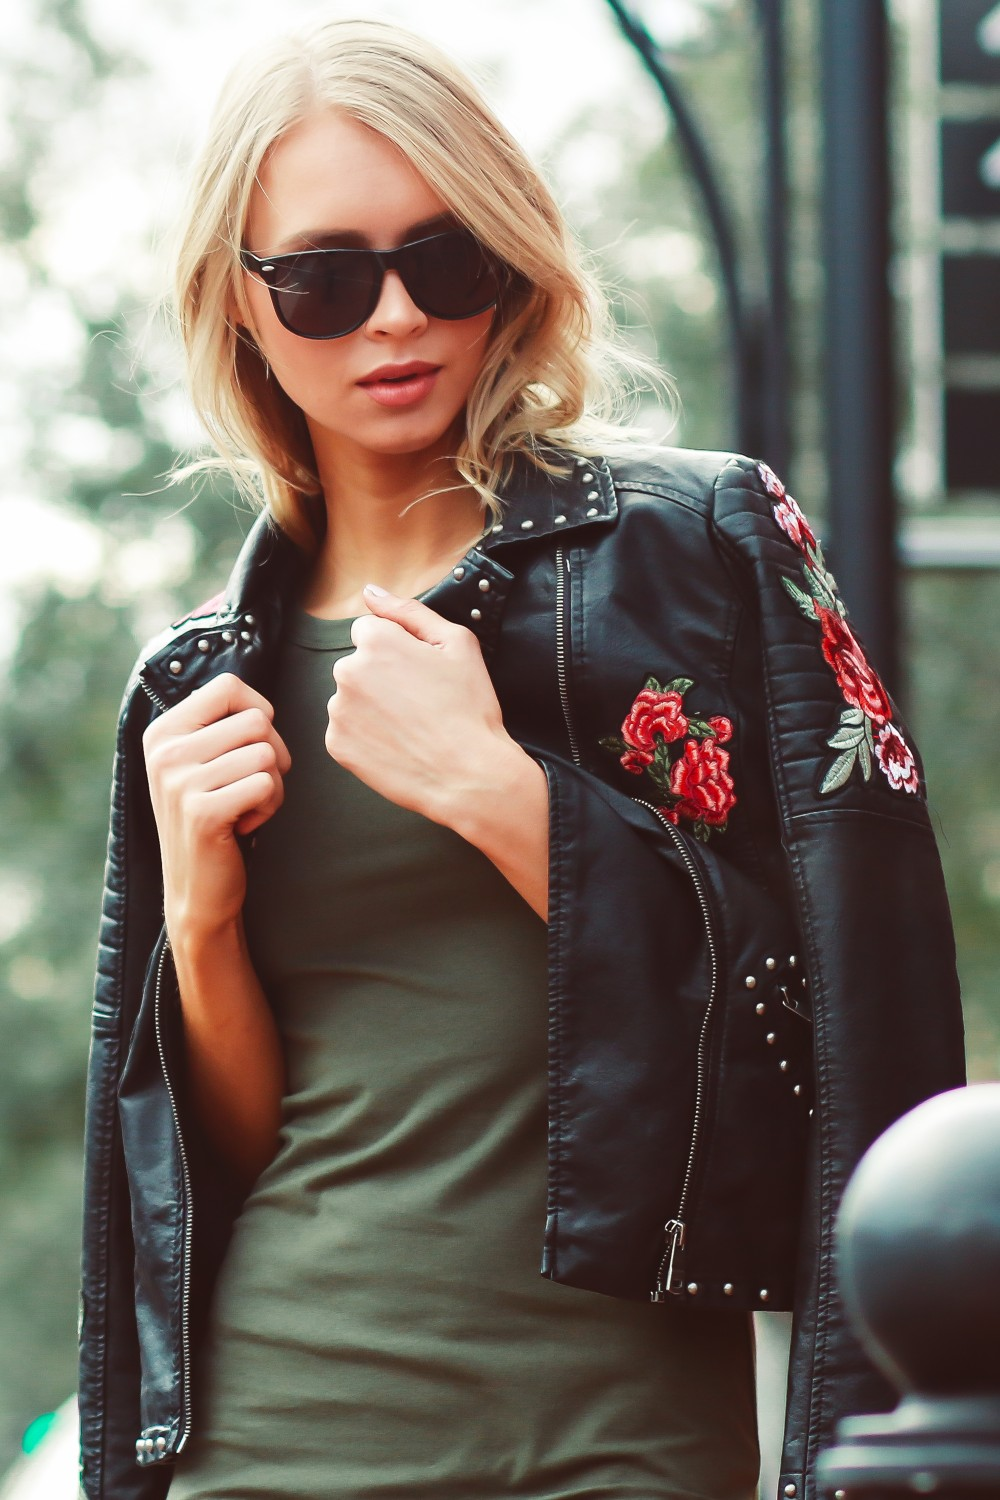 ROSE EMBROIDERED STUDDED LEATHER JACKET